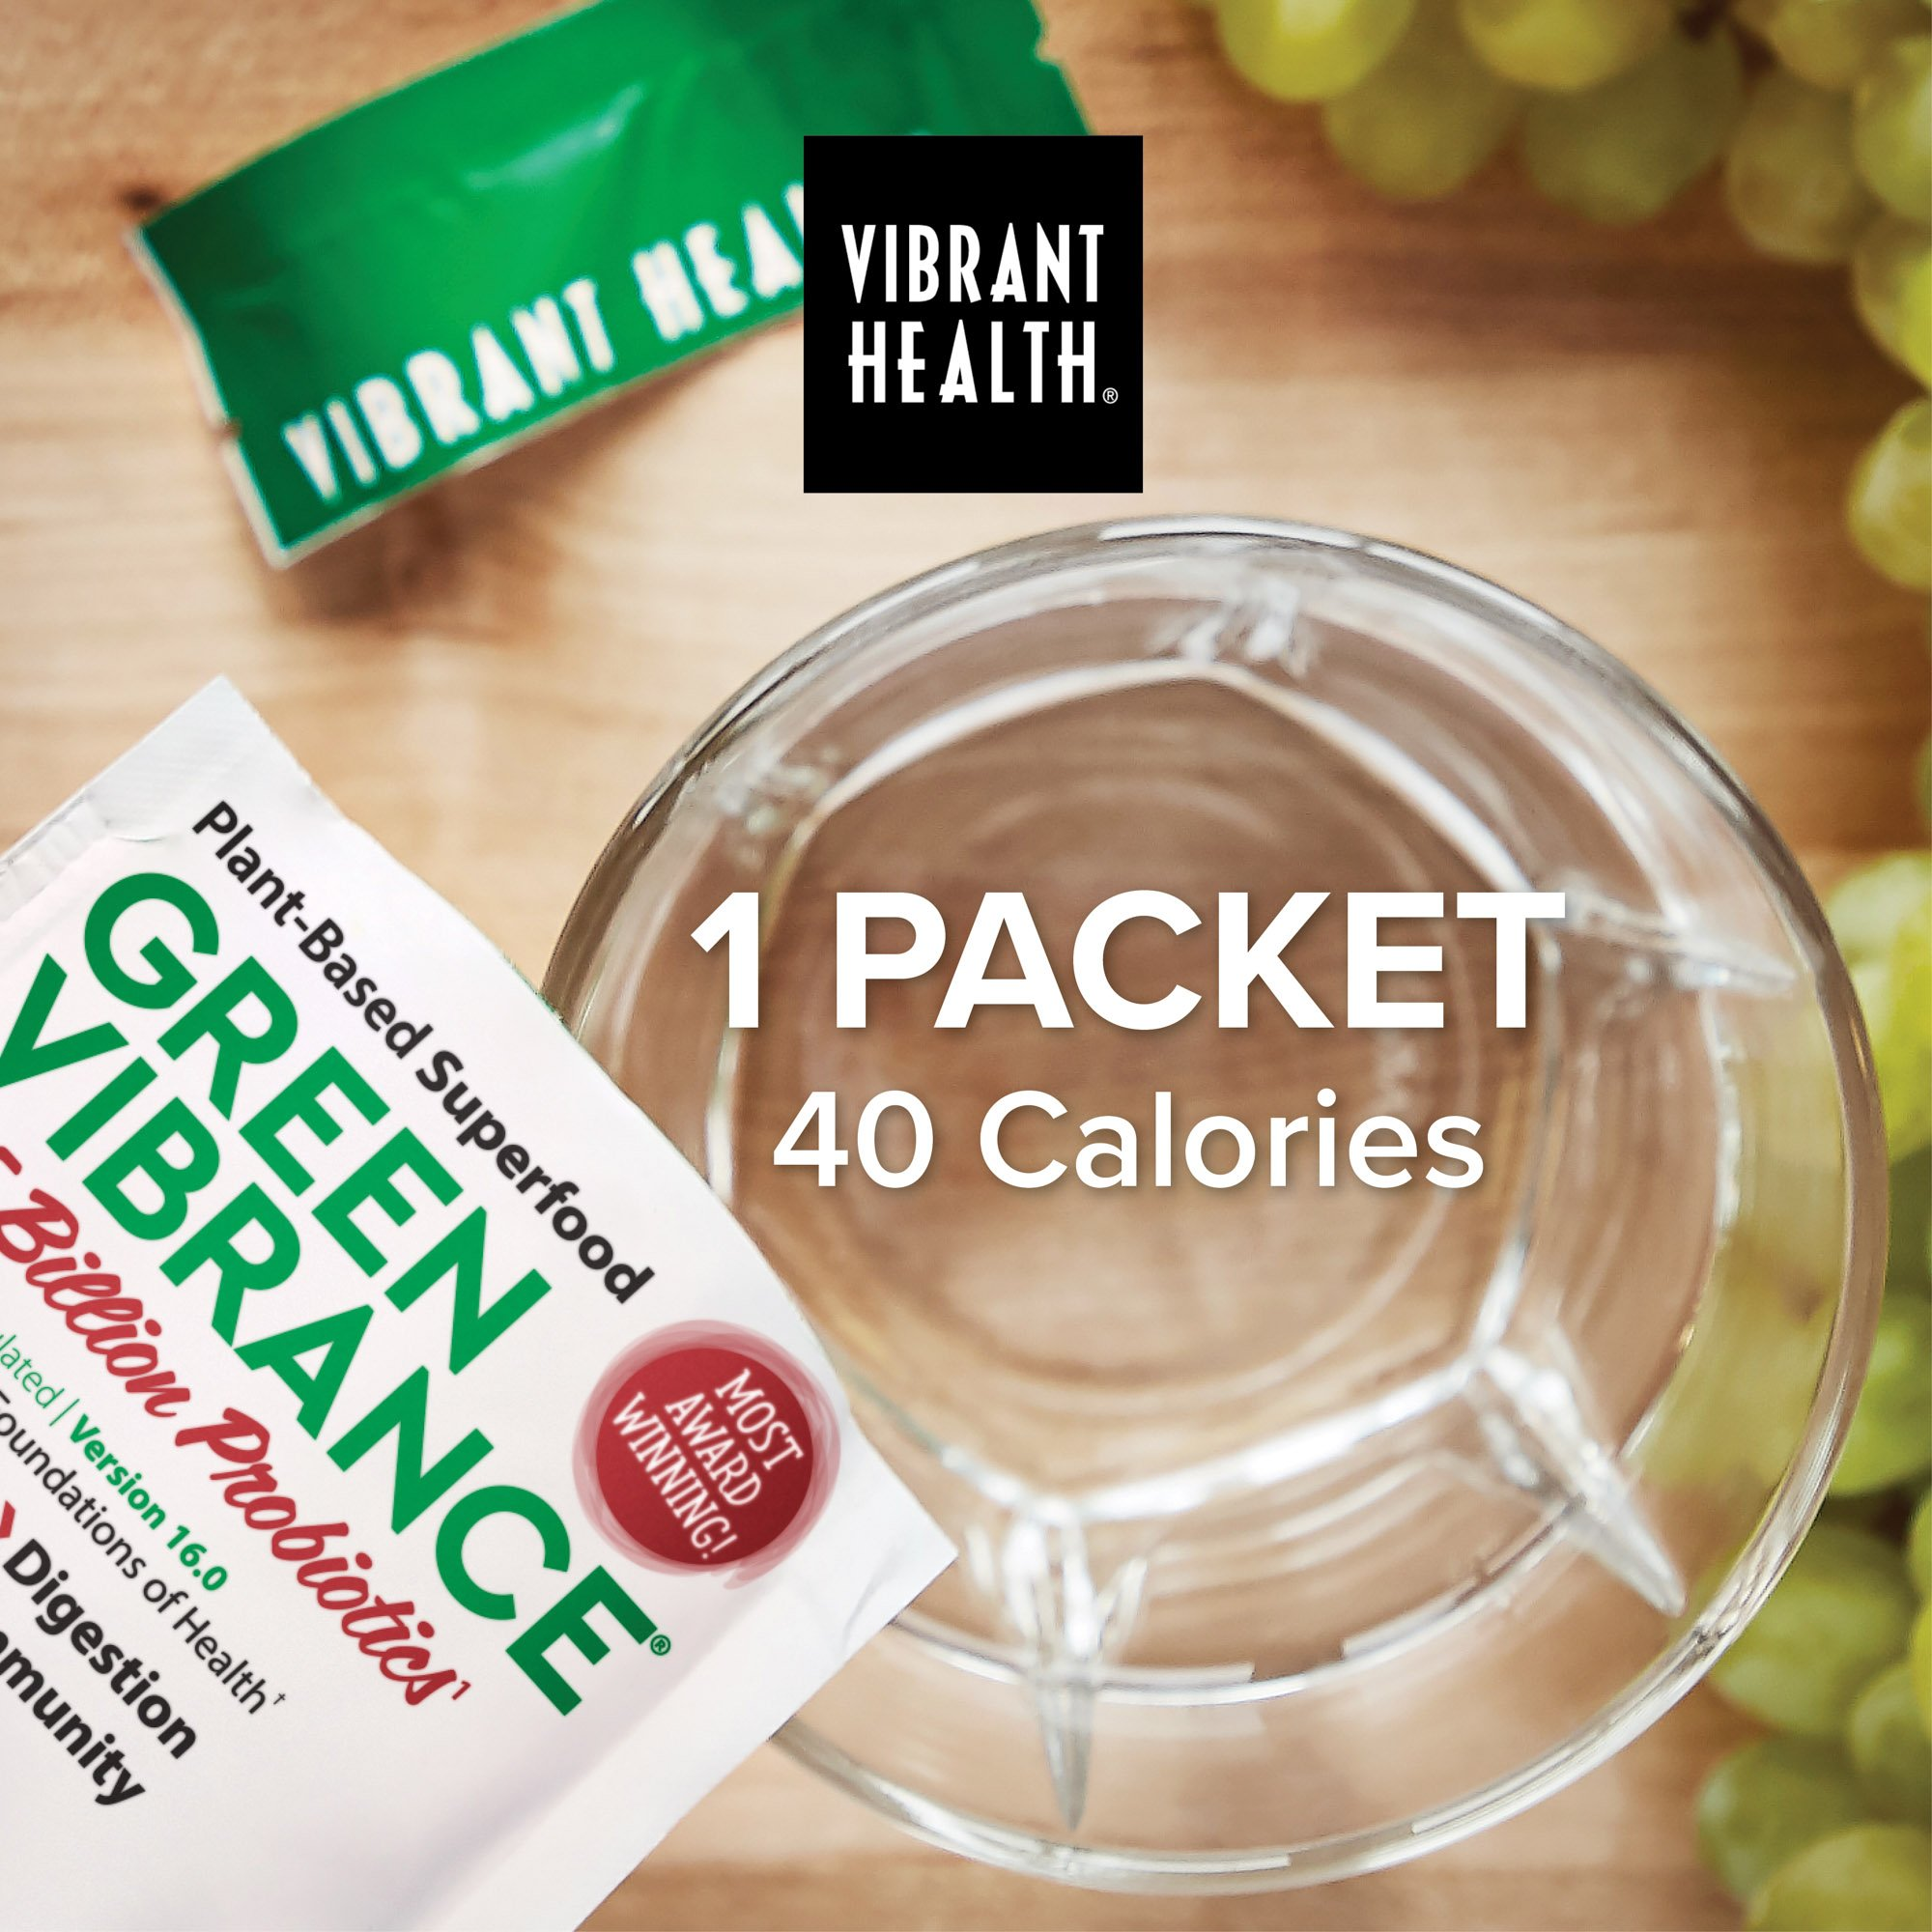 Vibrant Health - Green Vibrance, Plant-based Daily Superfood + Protein and Antioxidants, 15 Packets by Vibrant Health (Image #5)